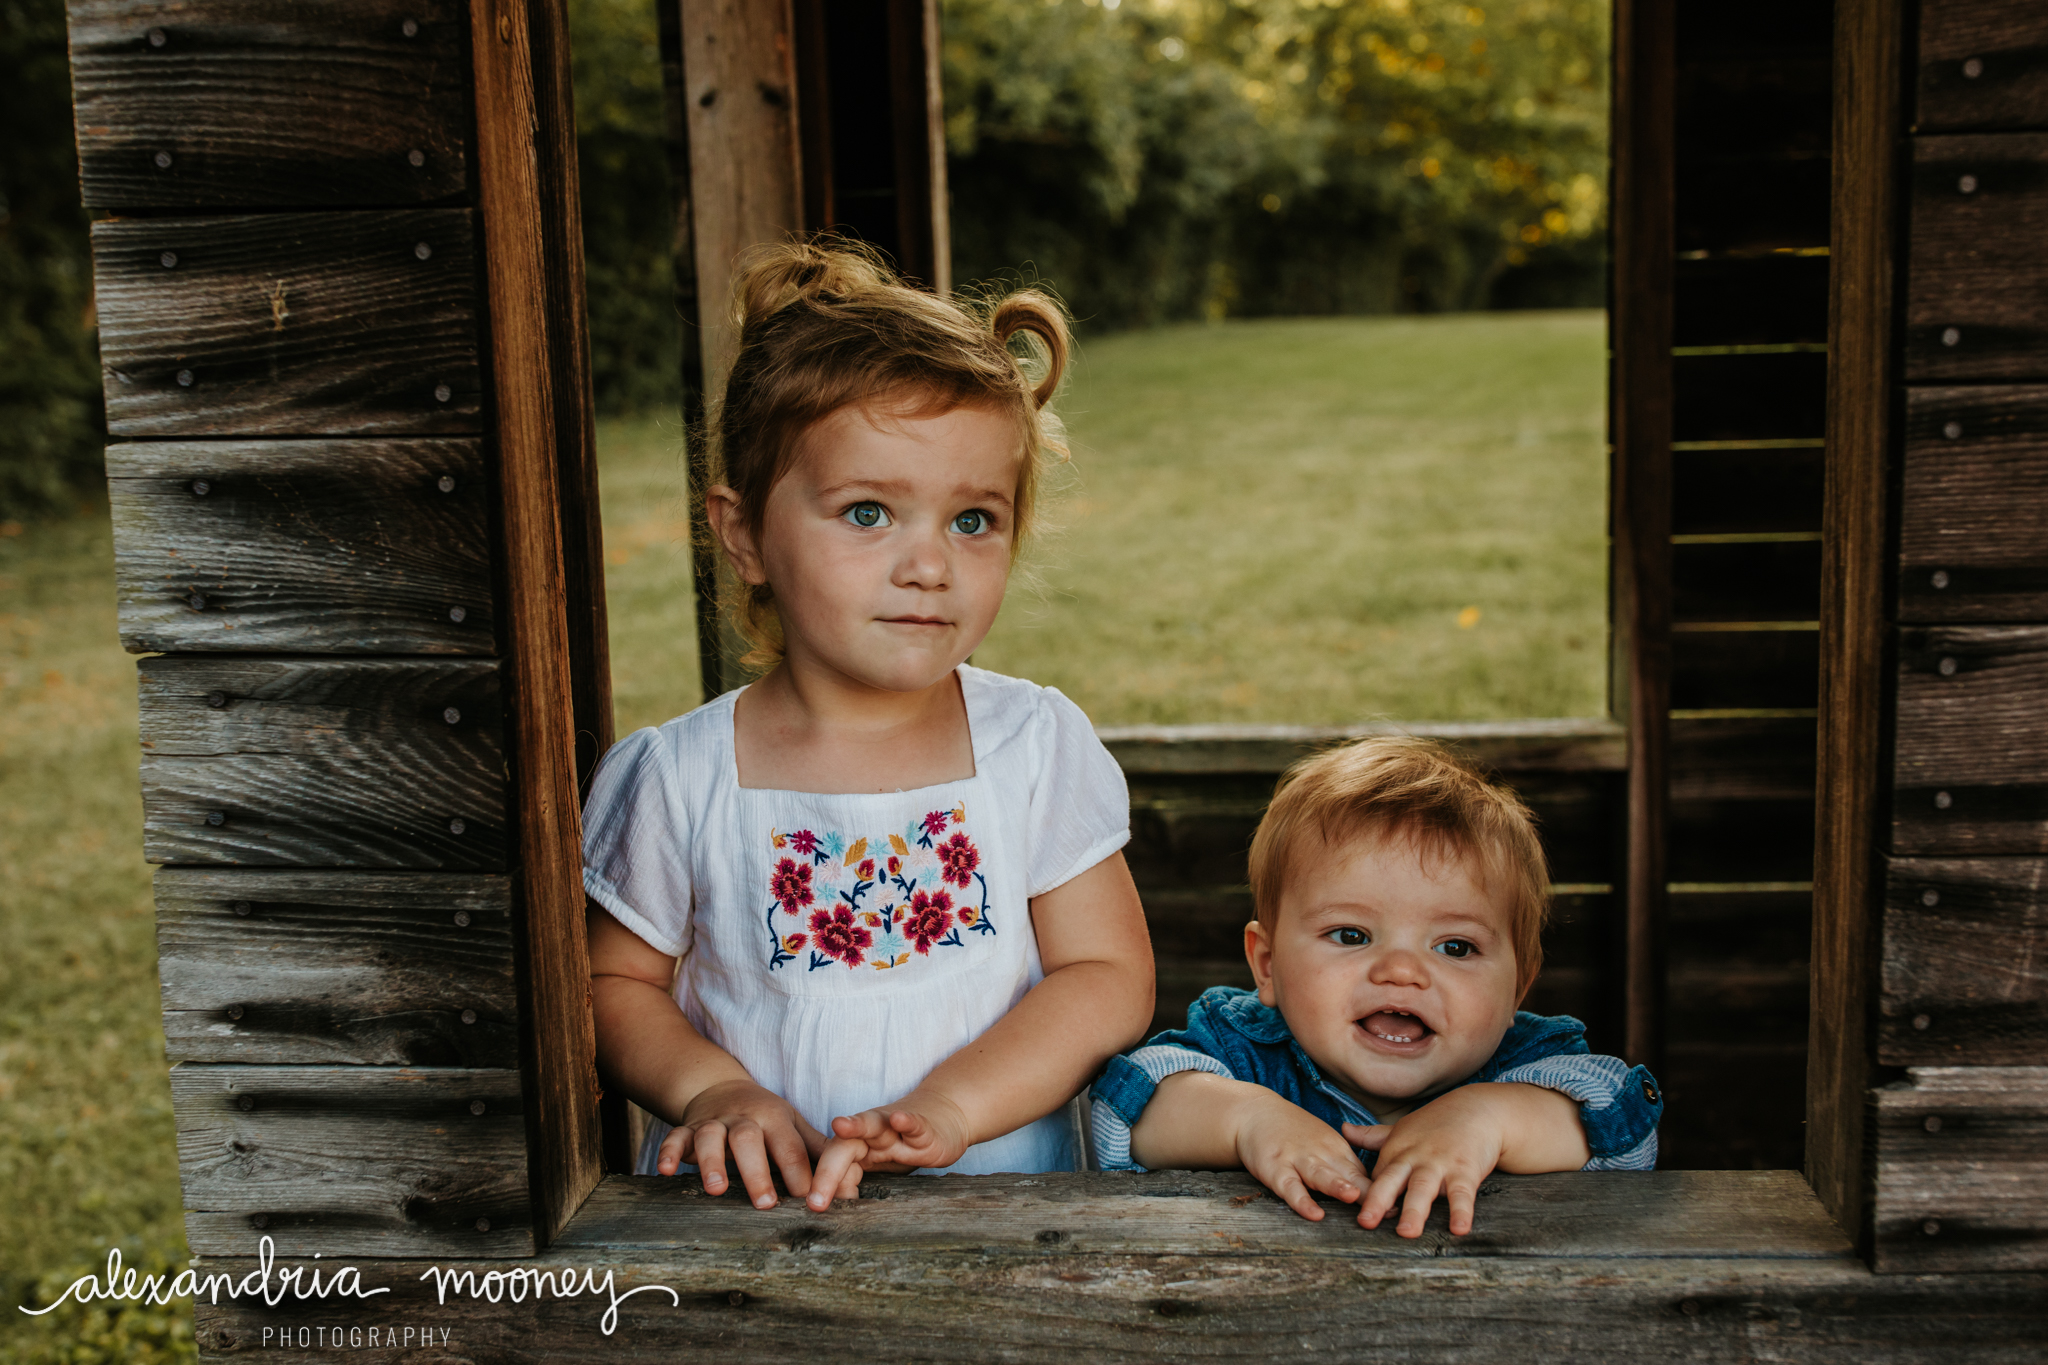 TheGieslerFamily_Watermarked-20.jpg